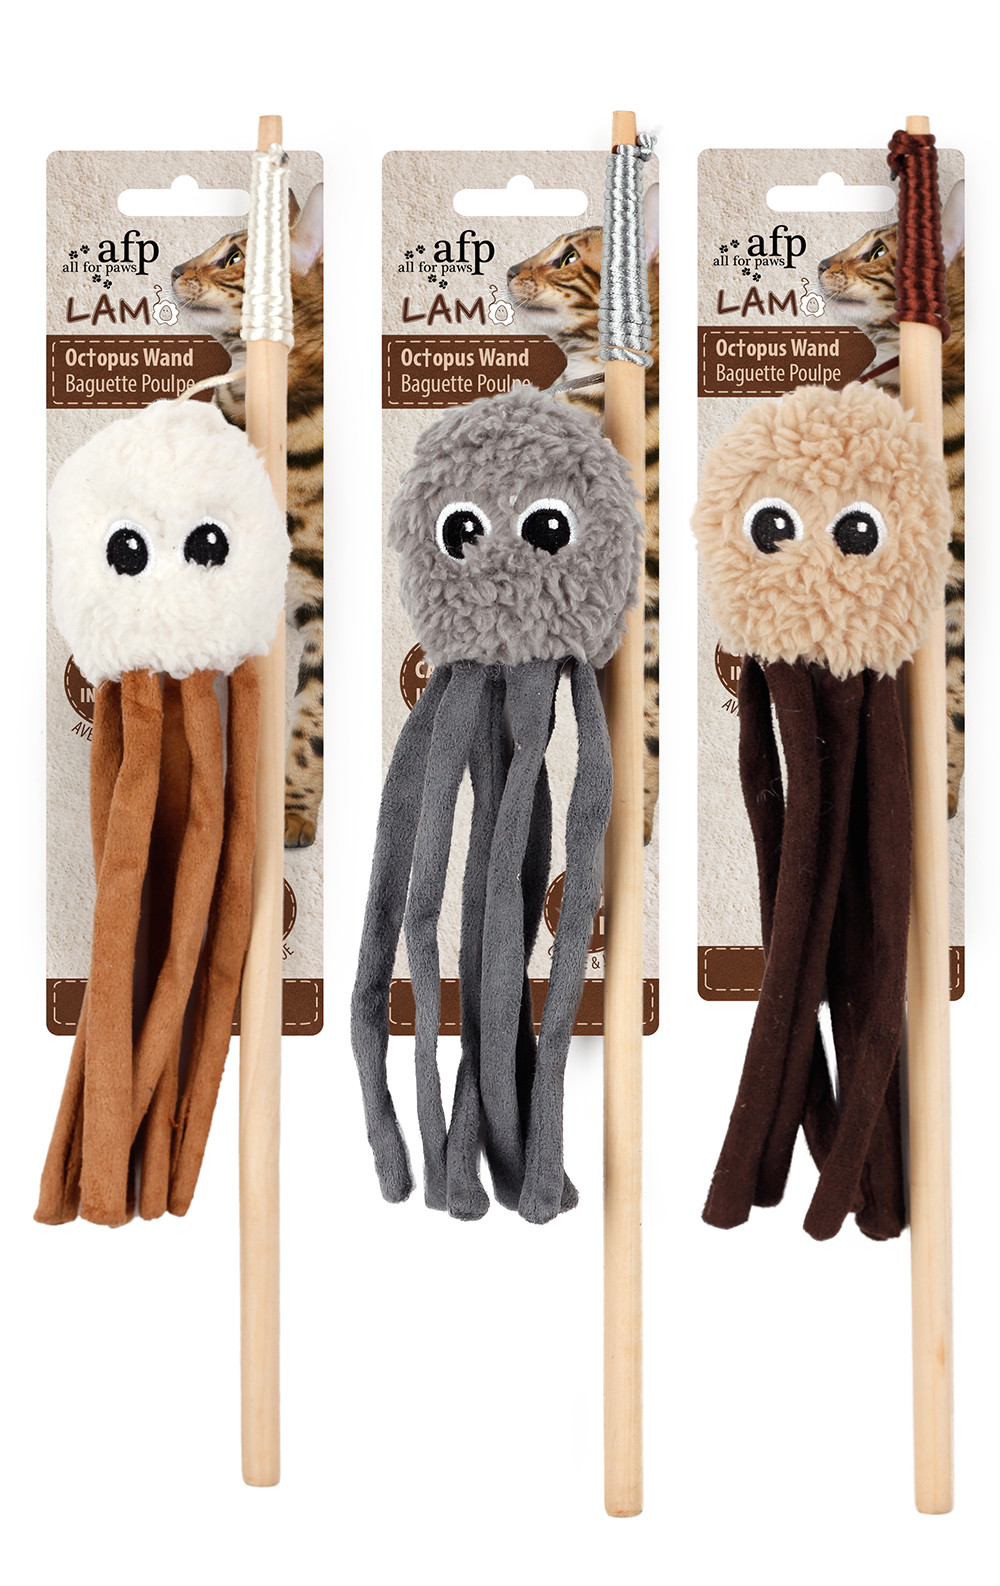 All for Paws Lambswool-Octupus Wand